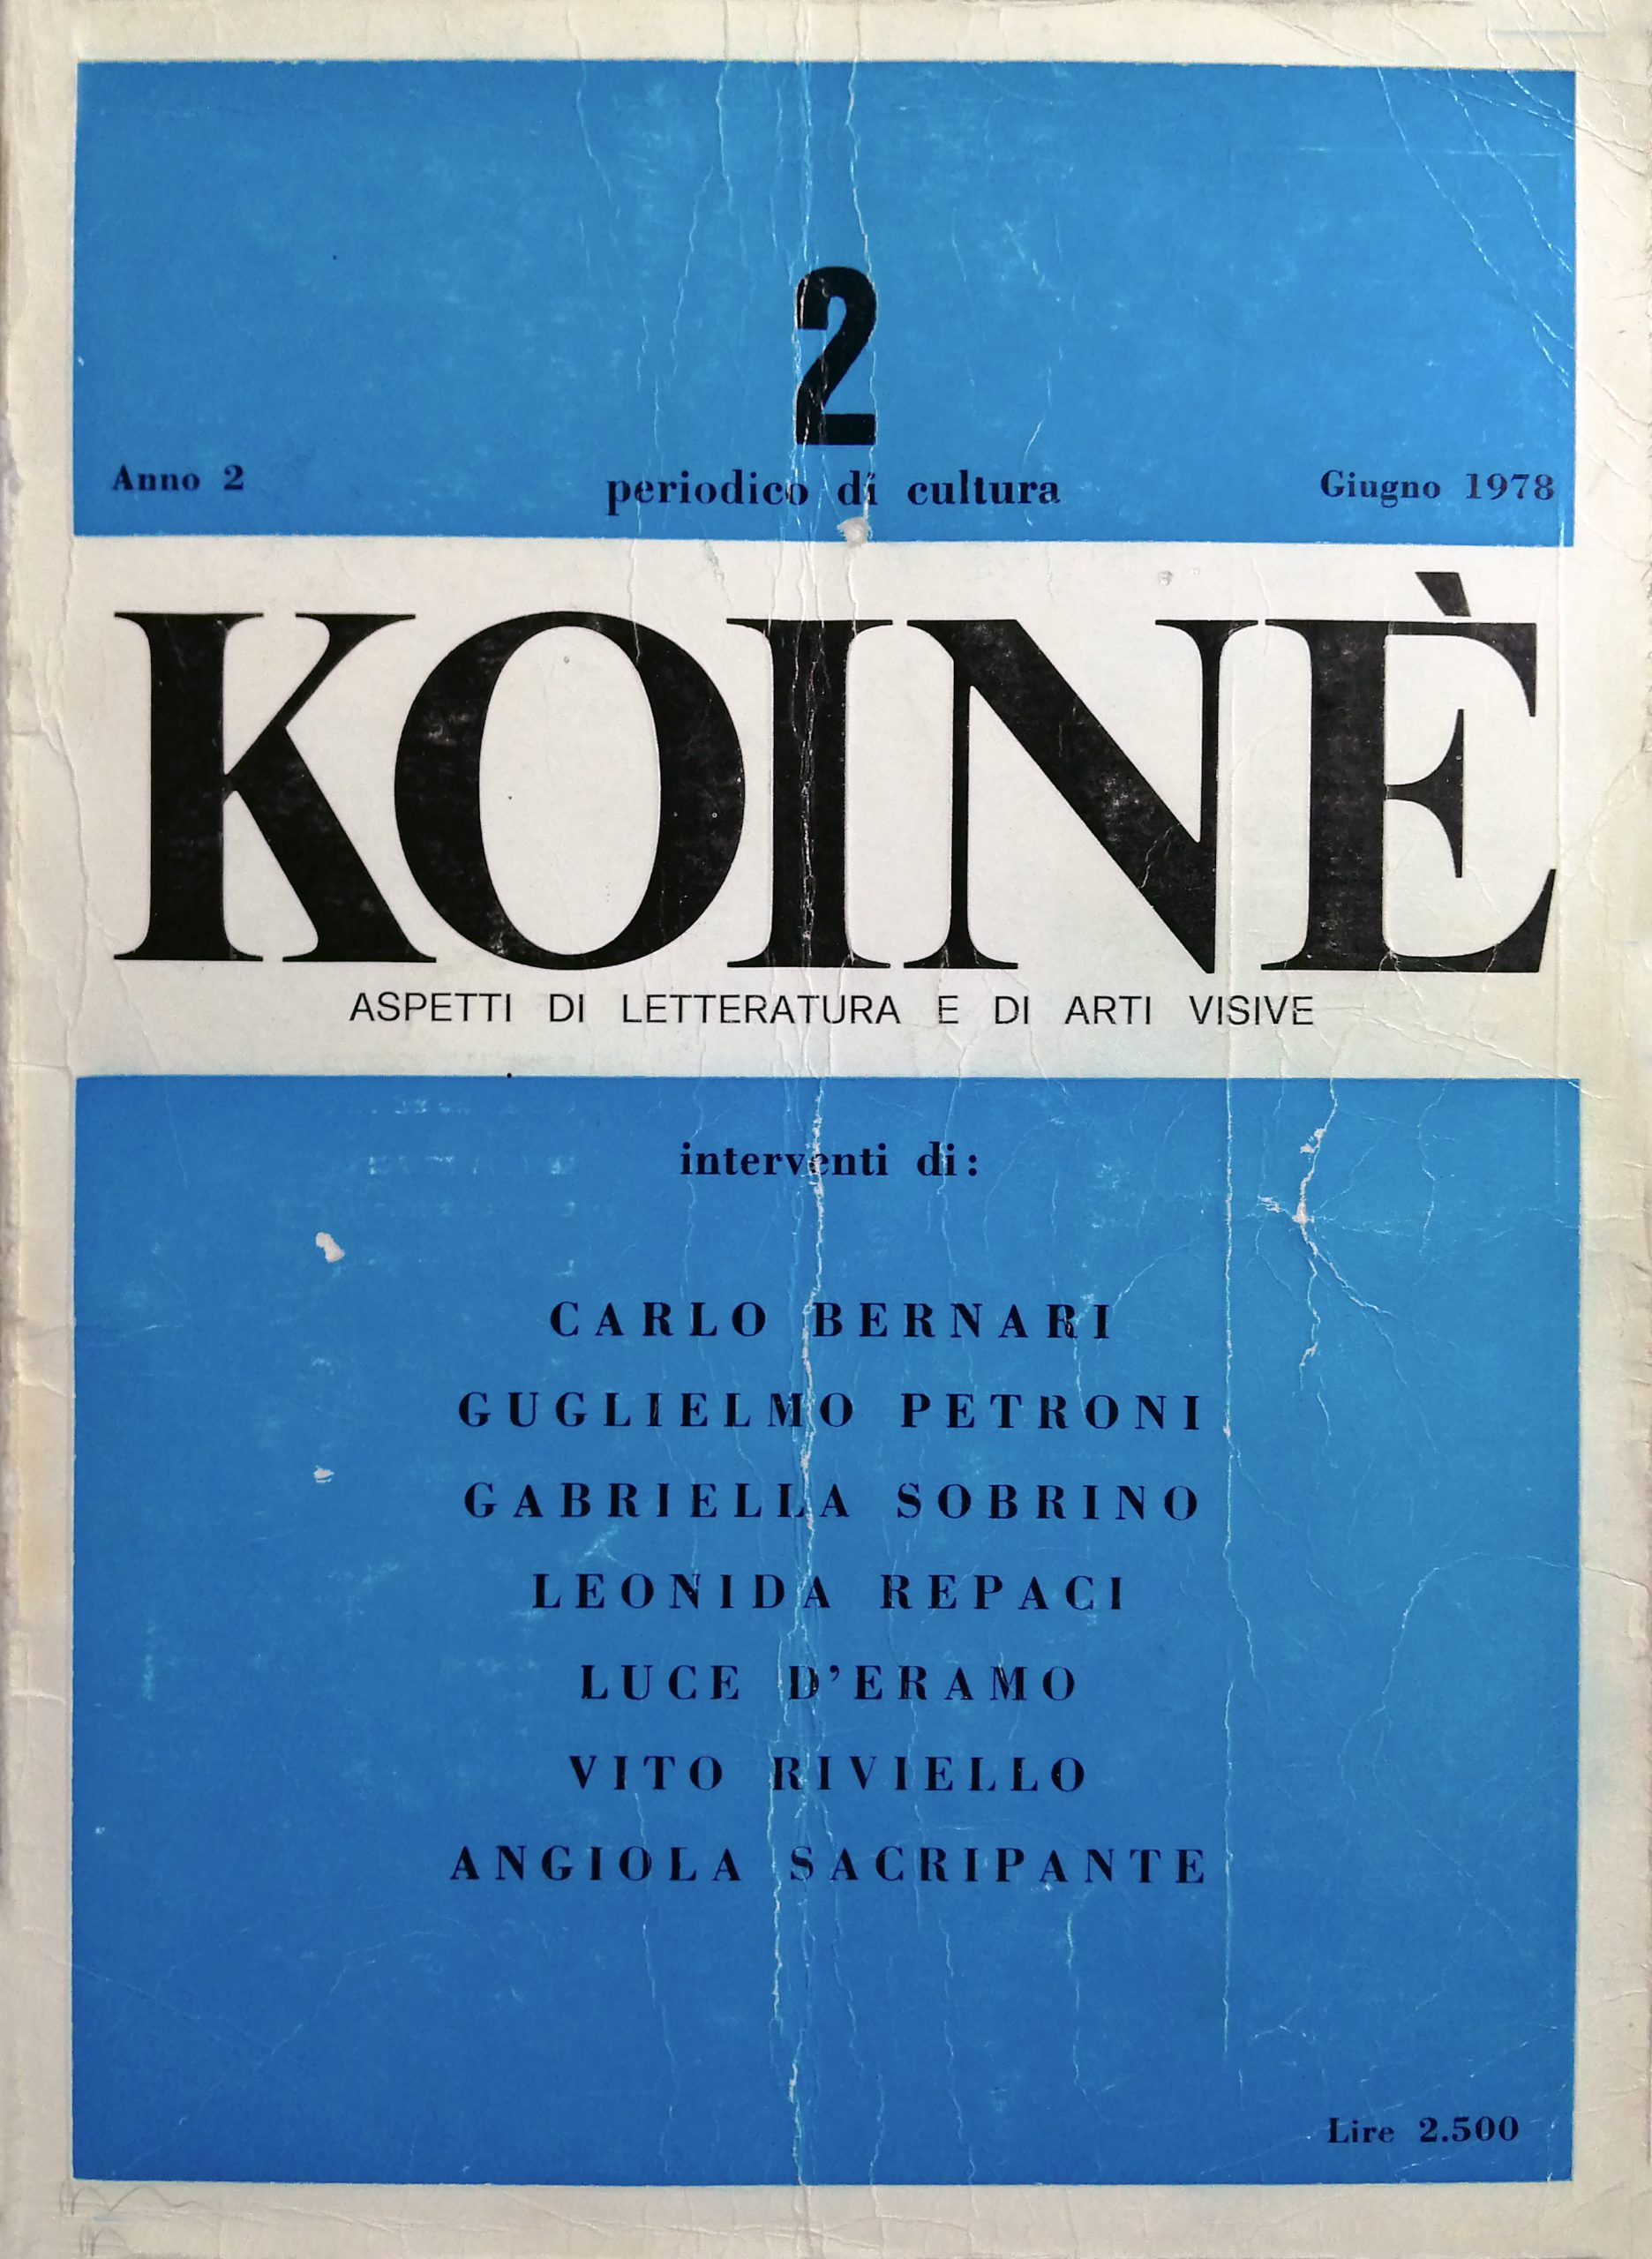 1978 Koinè periodico  scaled - Bibliography/ Catalogues